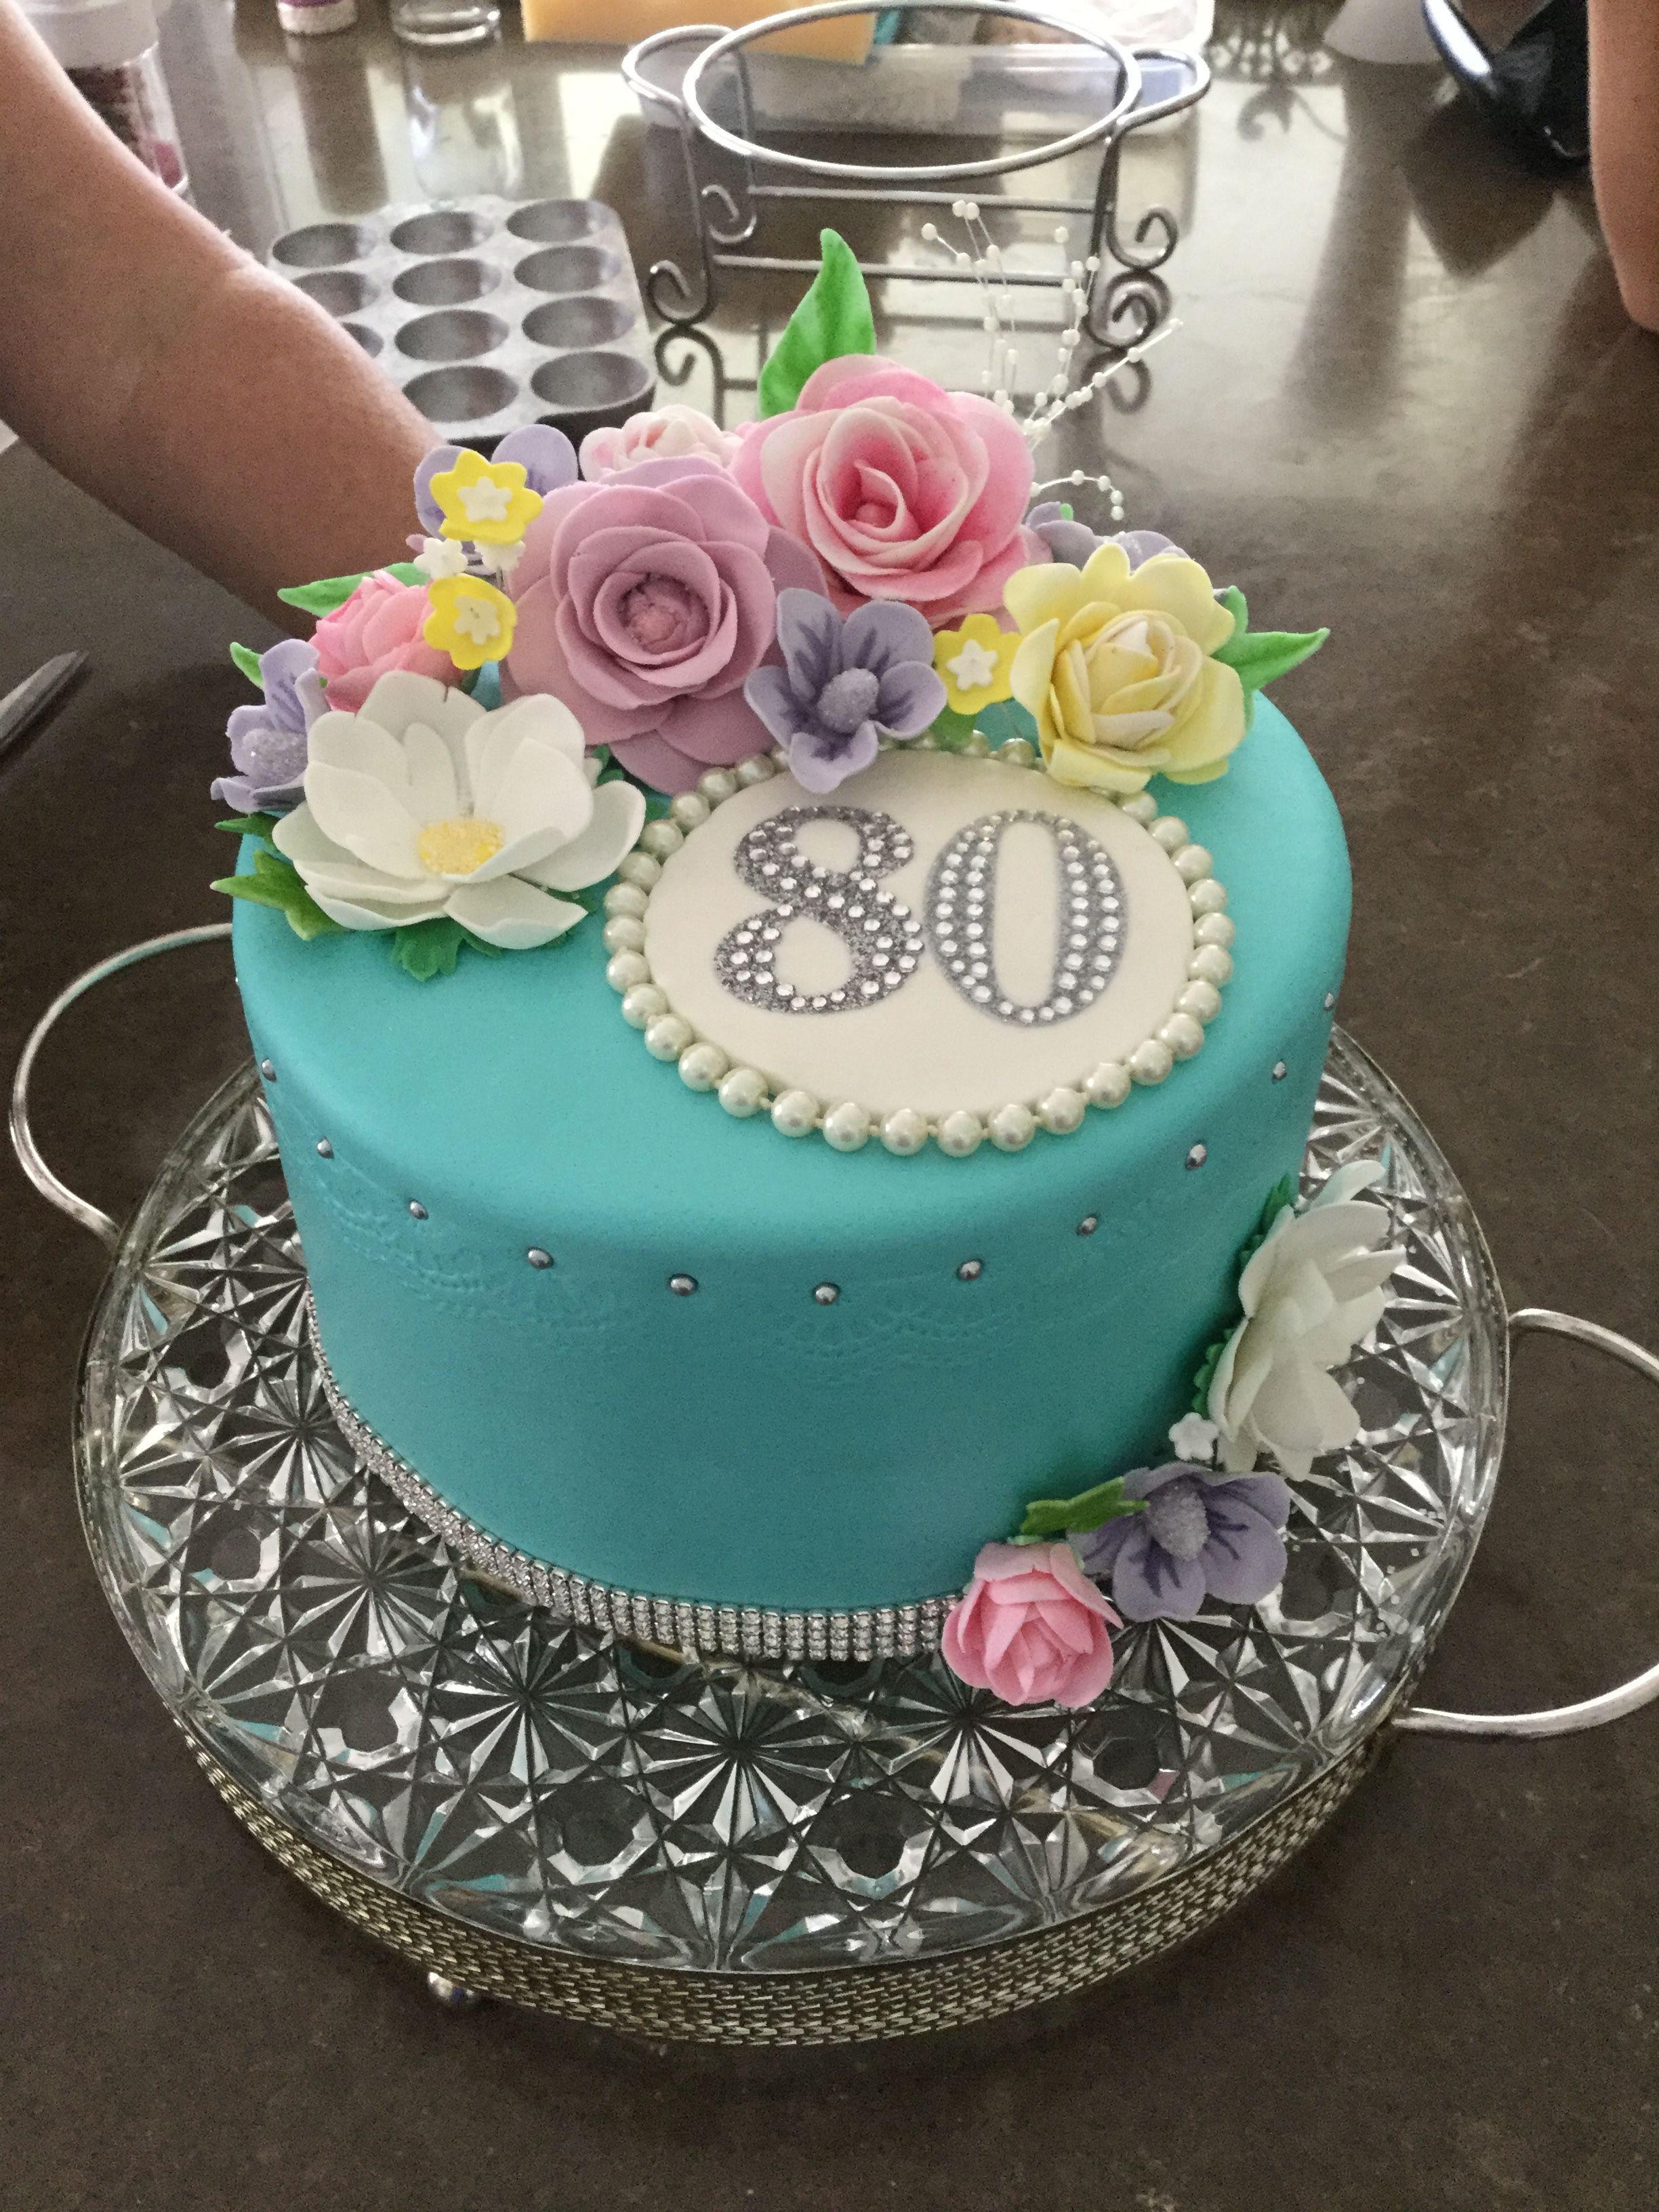 Awesome Floral 80Th Birthday Cake 80 Birthday Cake 90Th Birthday Cakes Personalised Birthday Cards Beptaeletsinfo